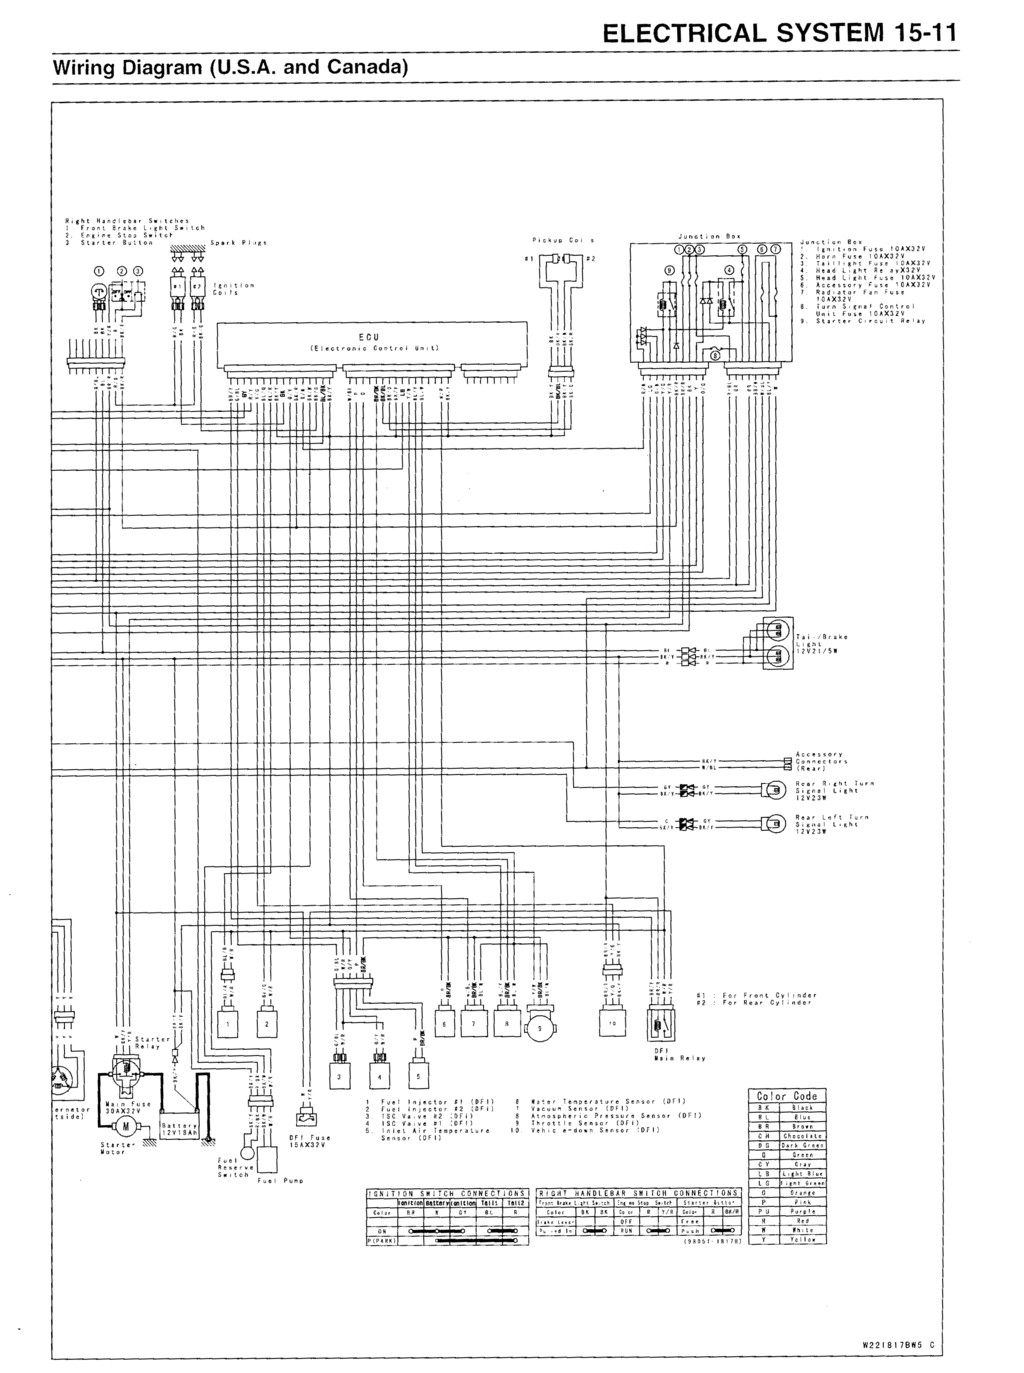 wiring diagram kawasaki vulcan 1500 wiring diagram list Gt750 Wiring Diagram